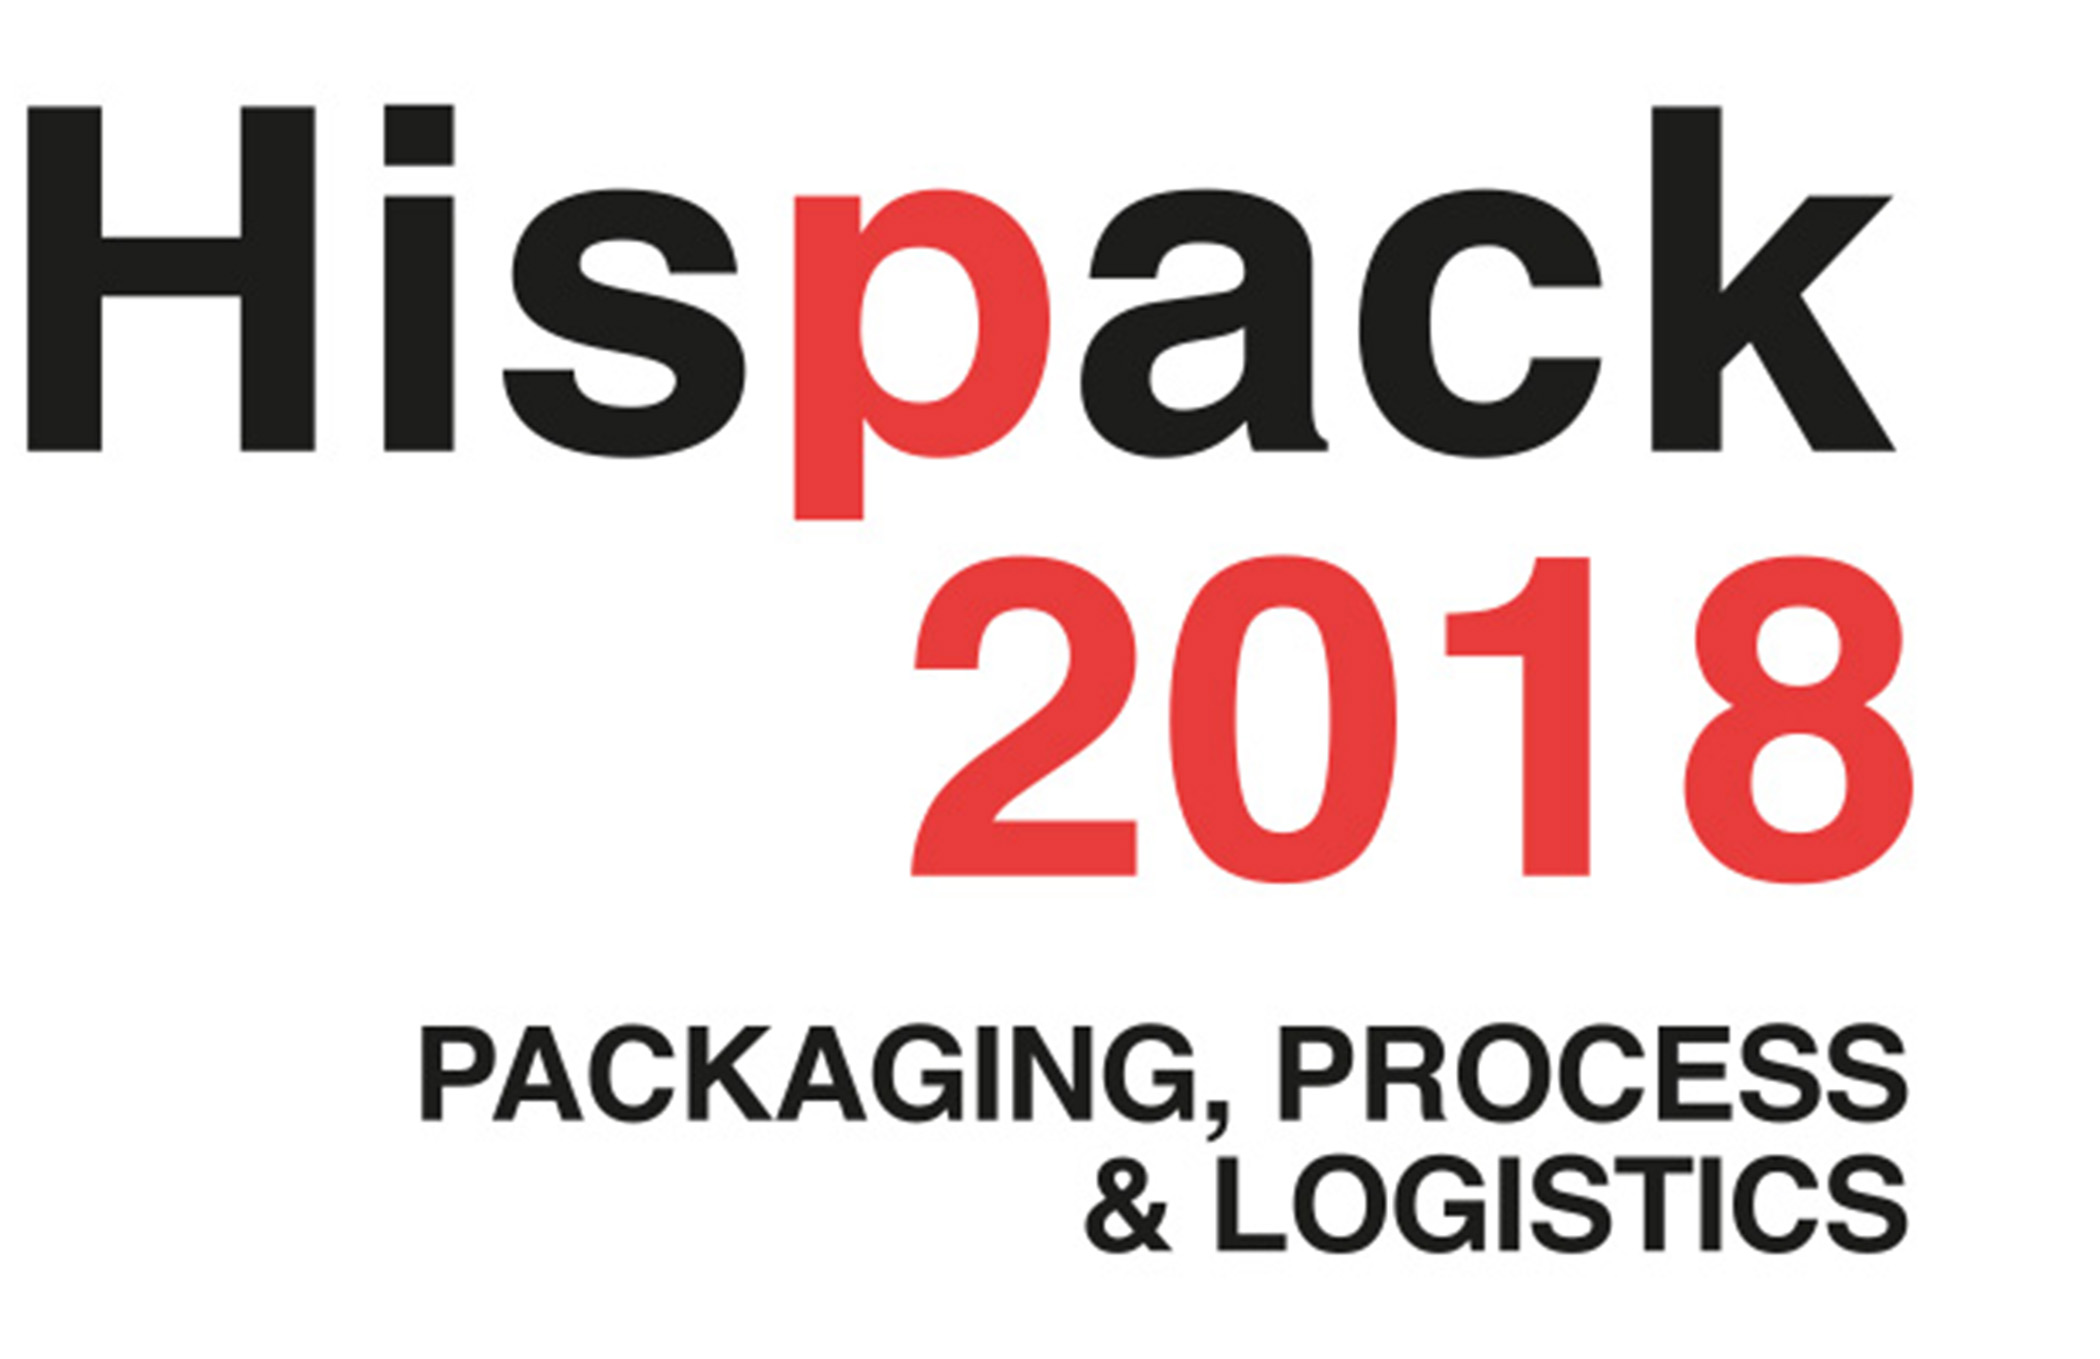 Visit the Tsubaki stand at Hispack 2018